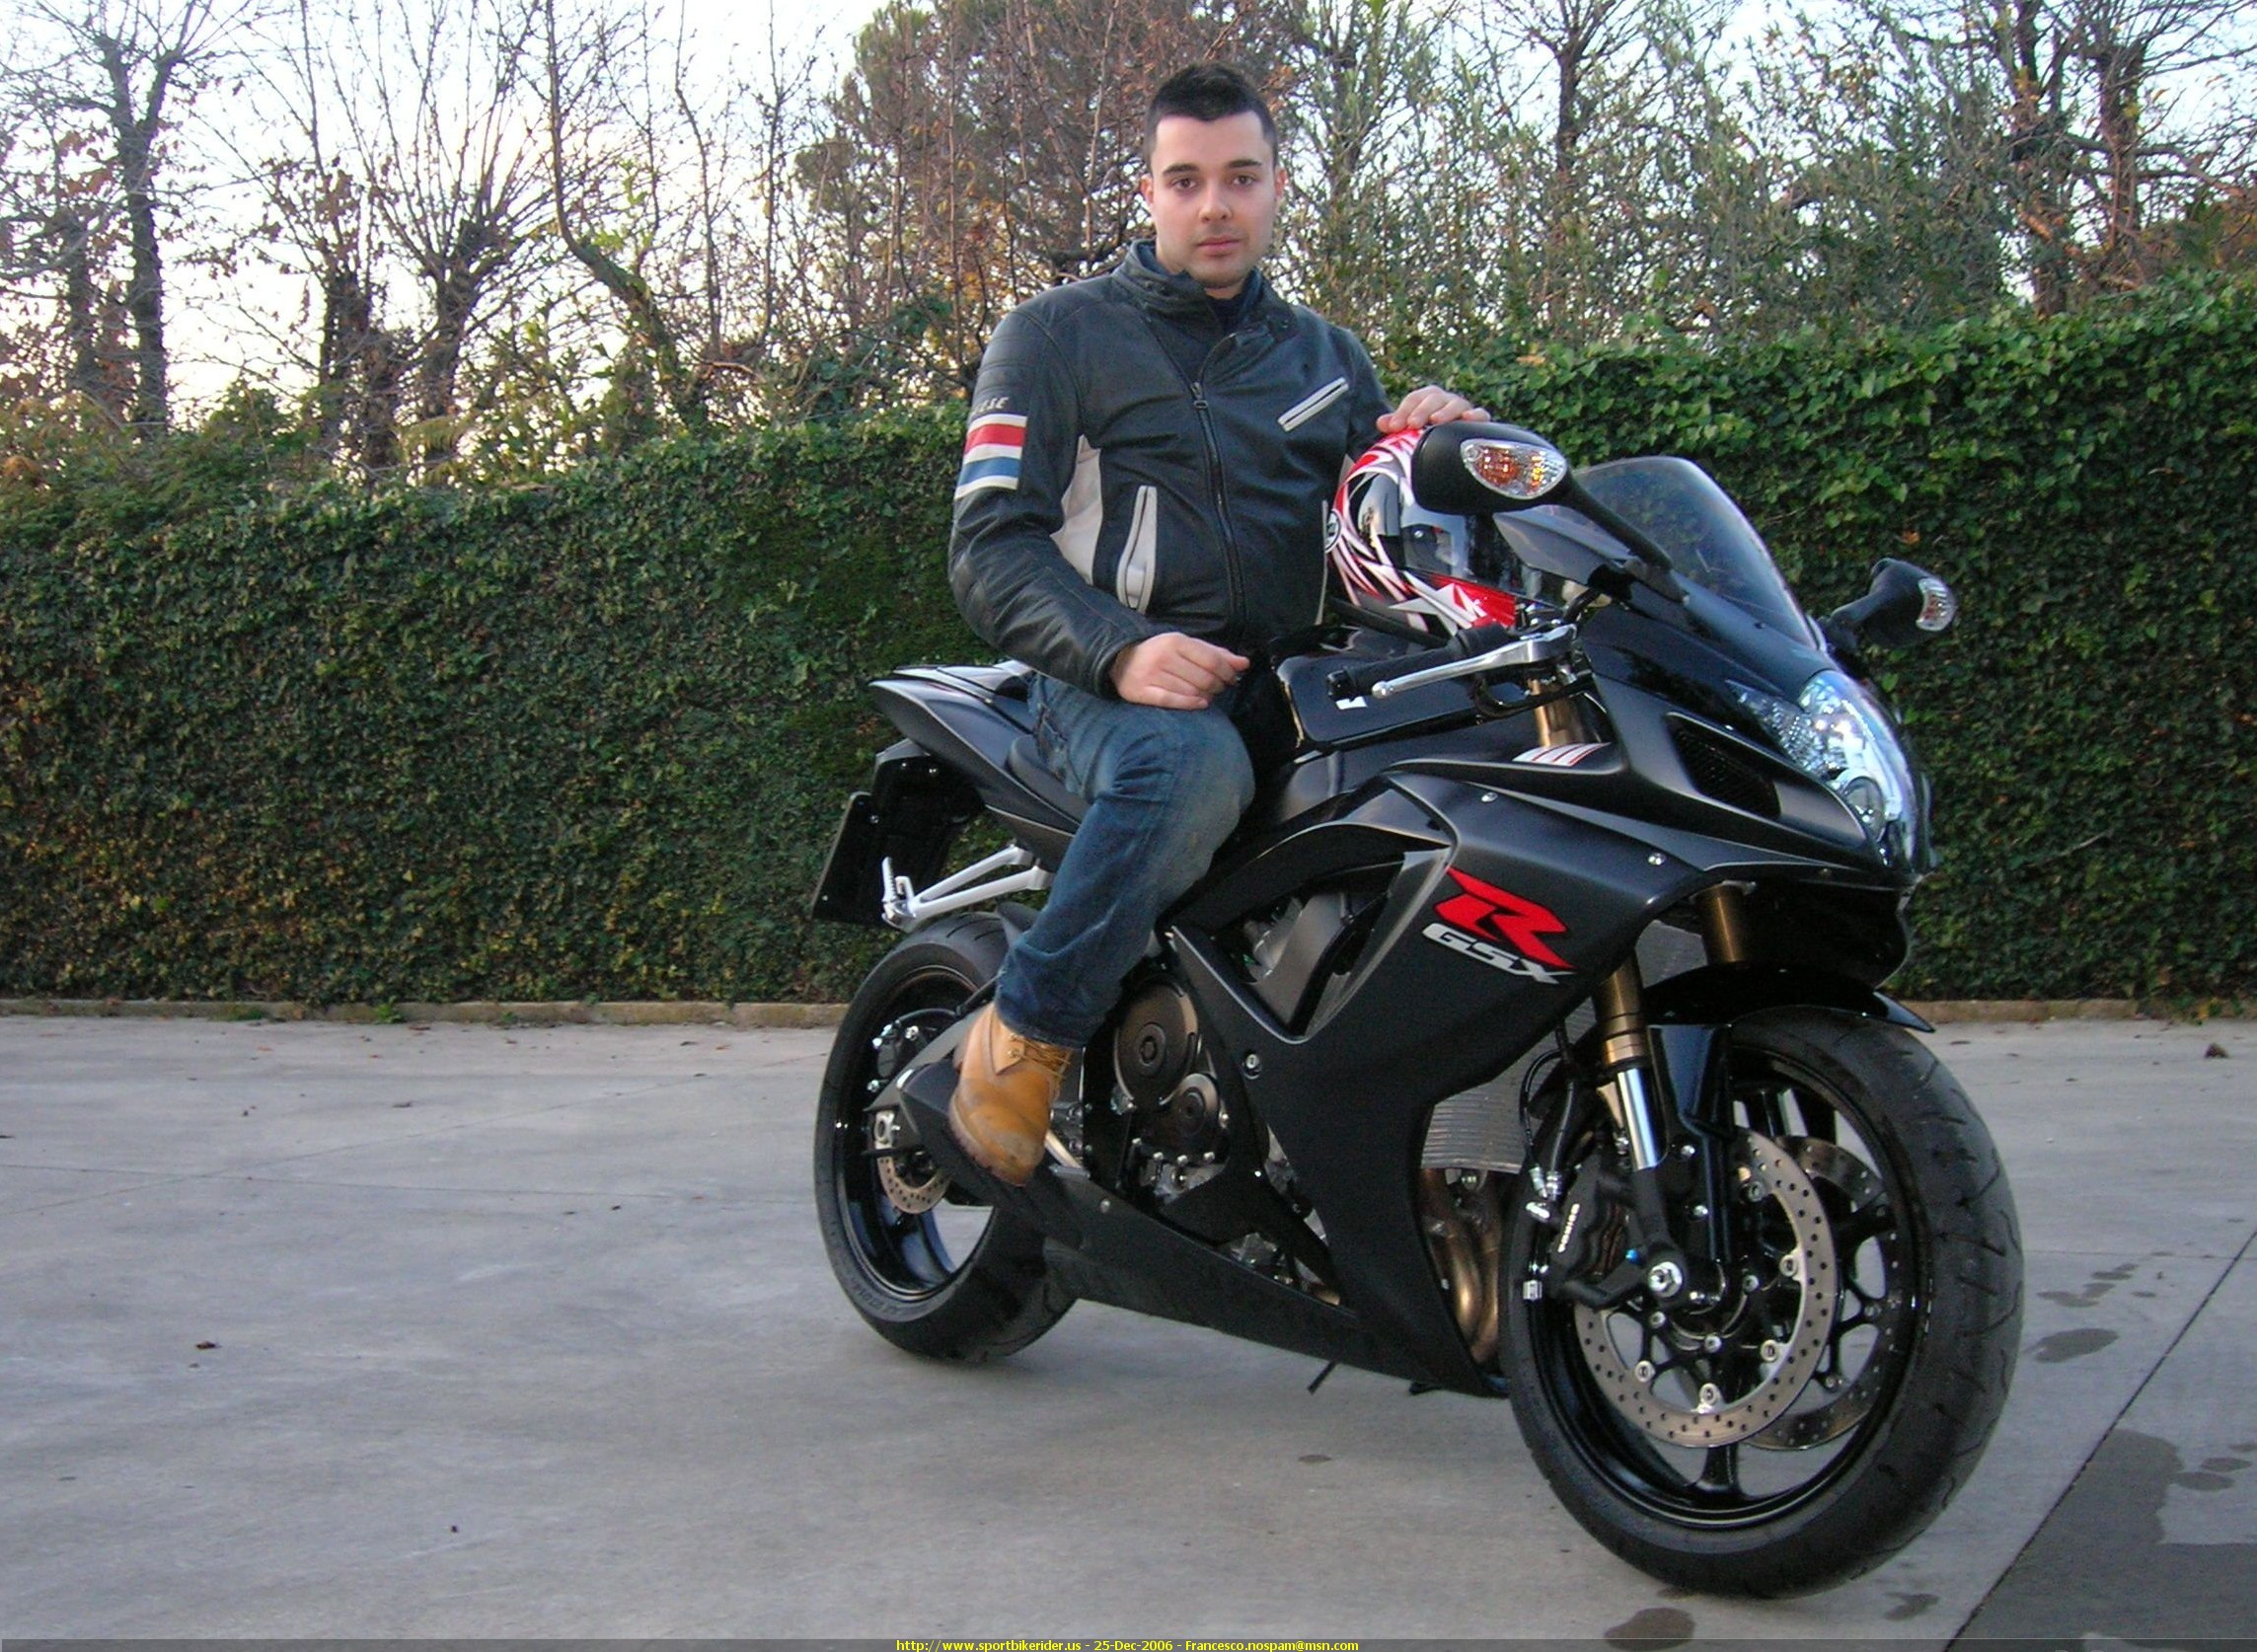 Tremendous 2006 Suzuki Gsx R 600 Image 11 Ibusinesslaw Wood Chair Design Ideas Ibusinesslaworg